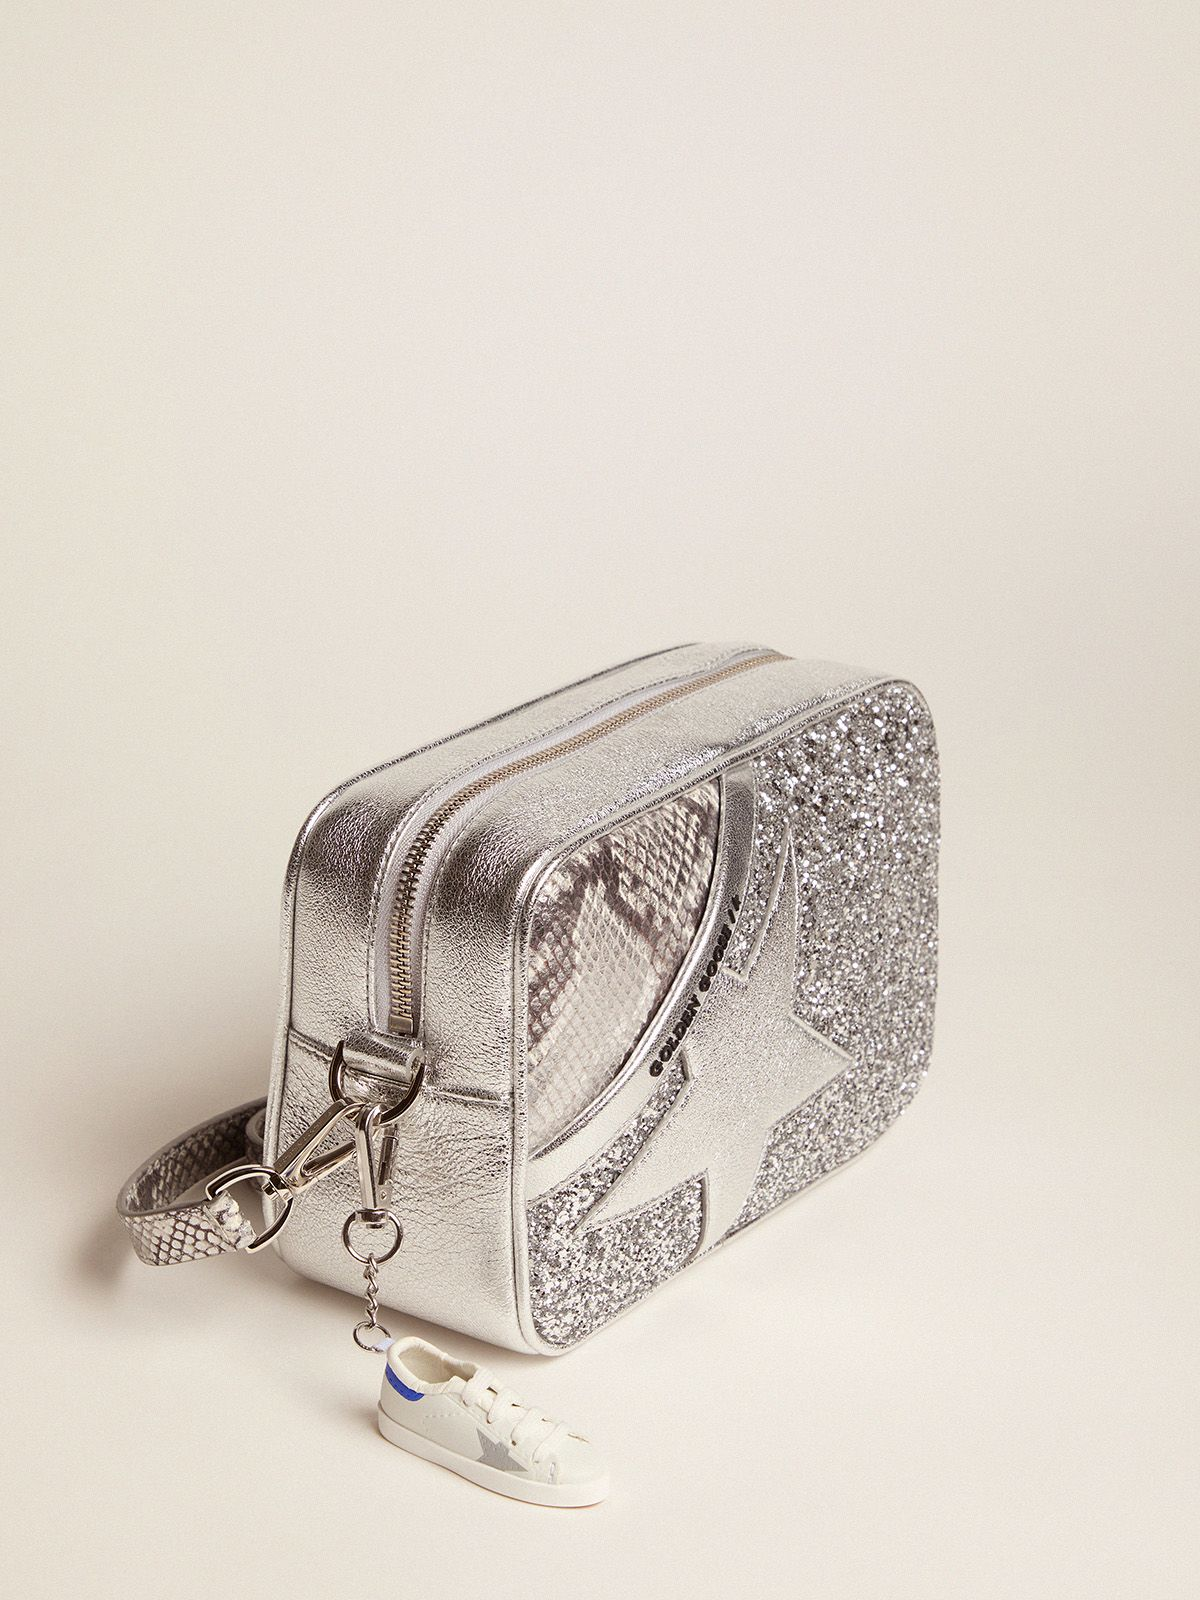 Golden Goose - Star Bag made of silver snake-print leather and glitter in